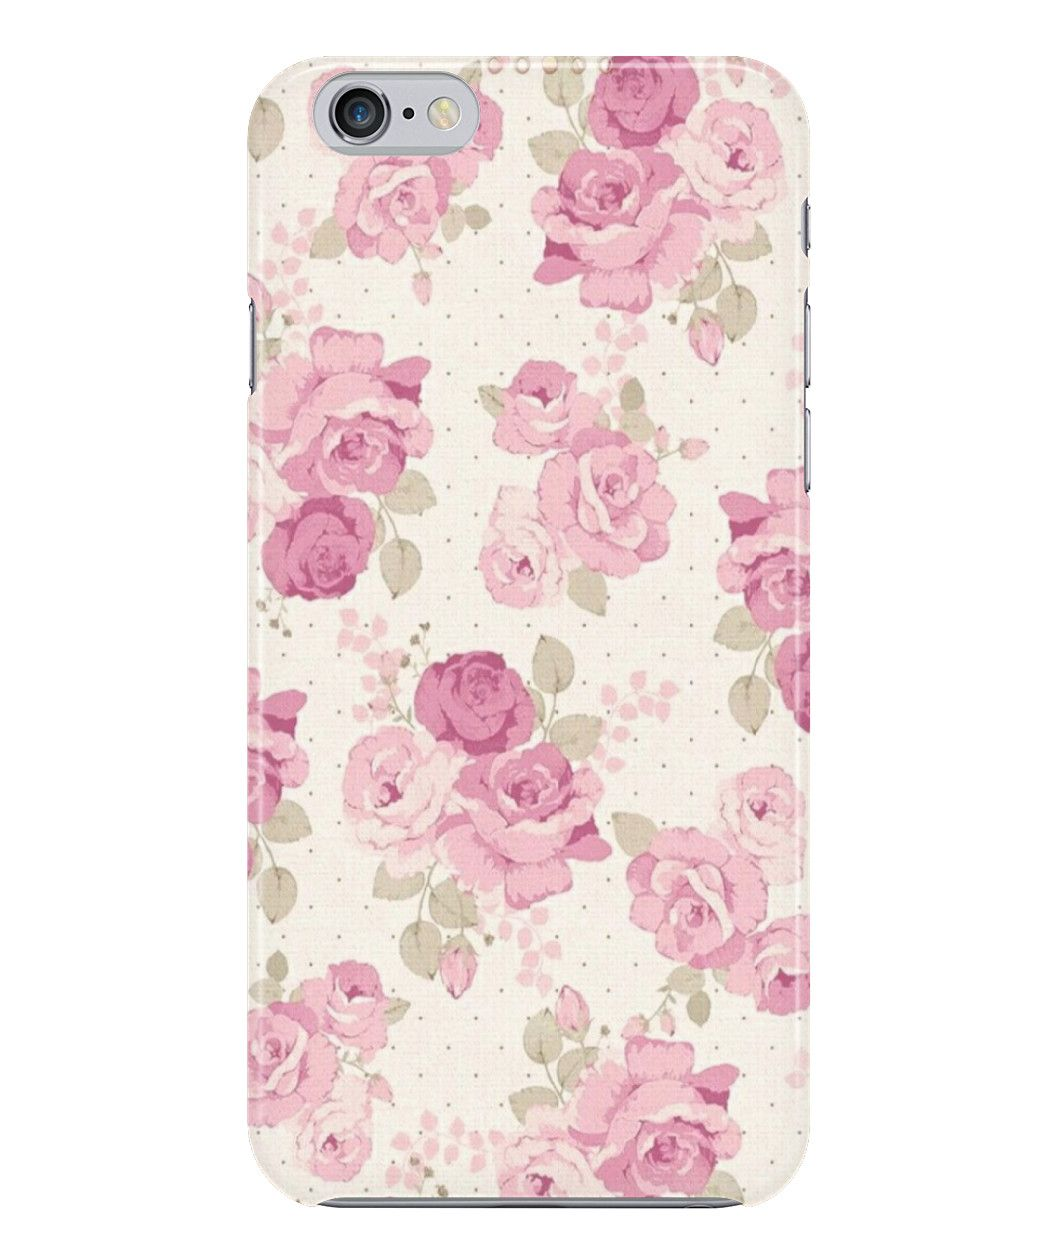 Pink Rose Phone Case Floral Wallpaper Pink Wallpaper Iphone